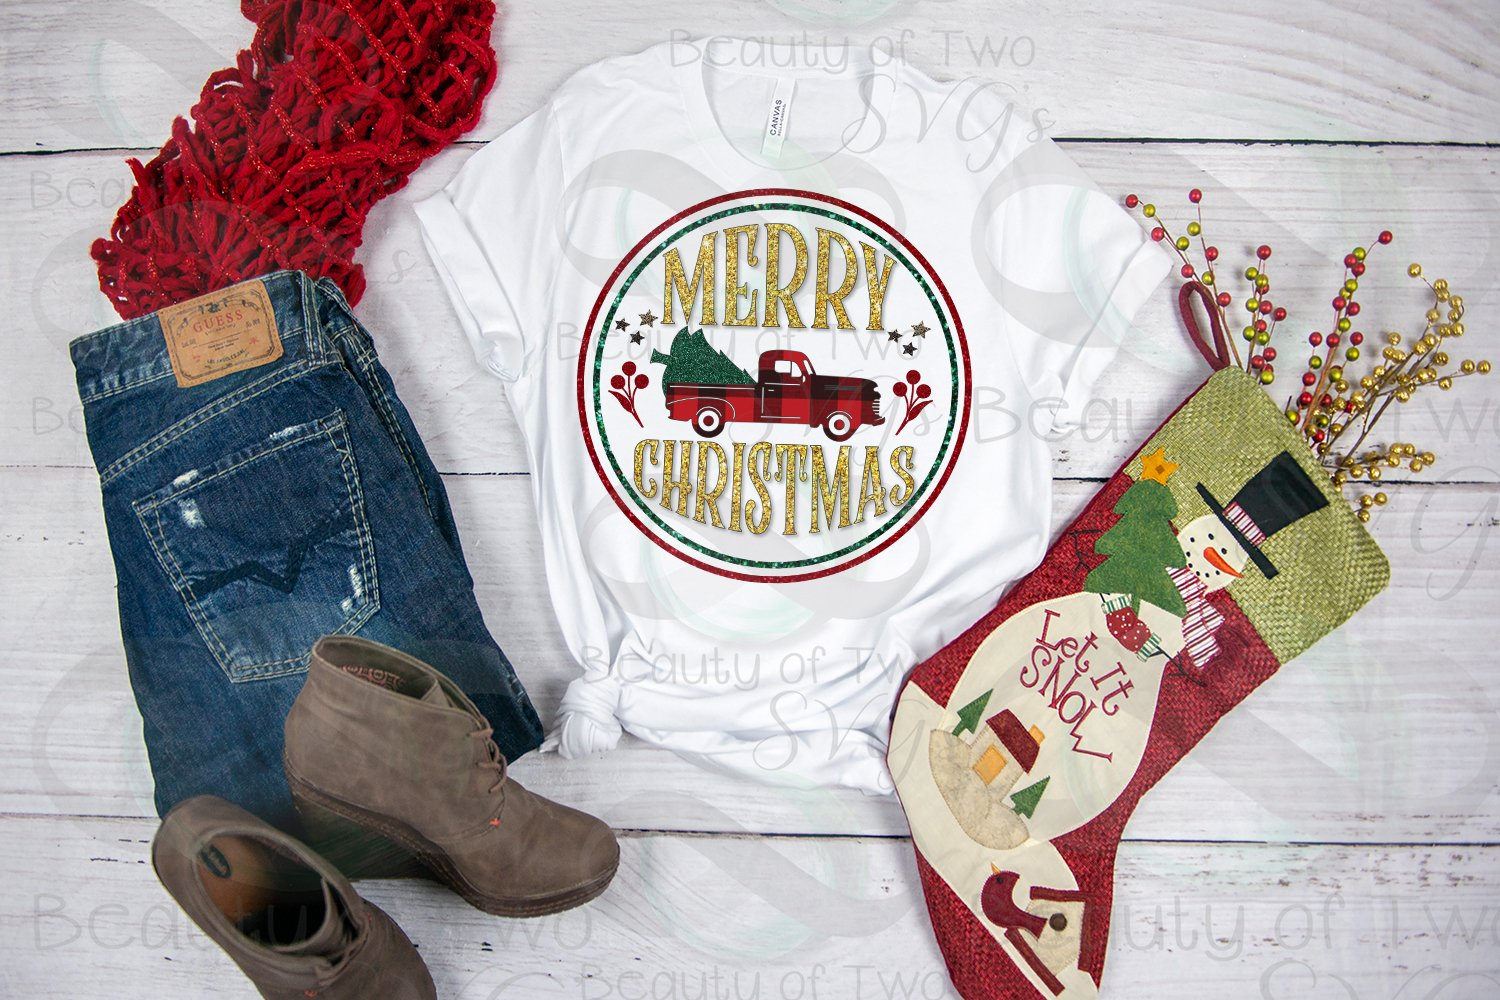 Merry Christmas Red Truck Sublimation Design png 300 dpi example image 2